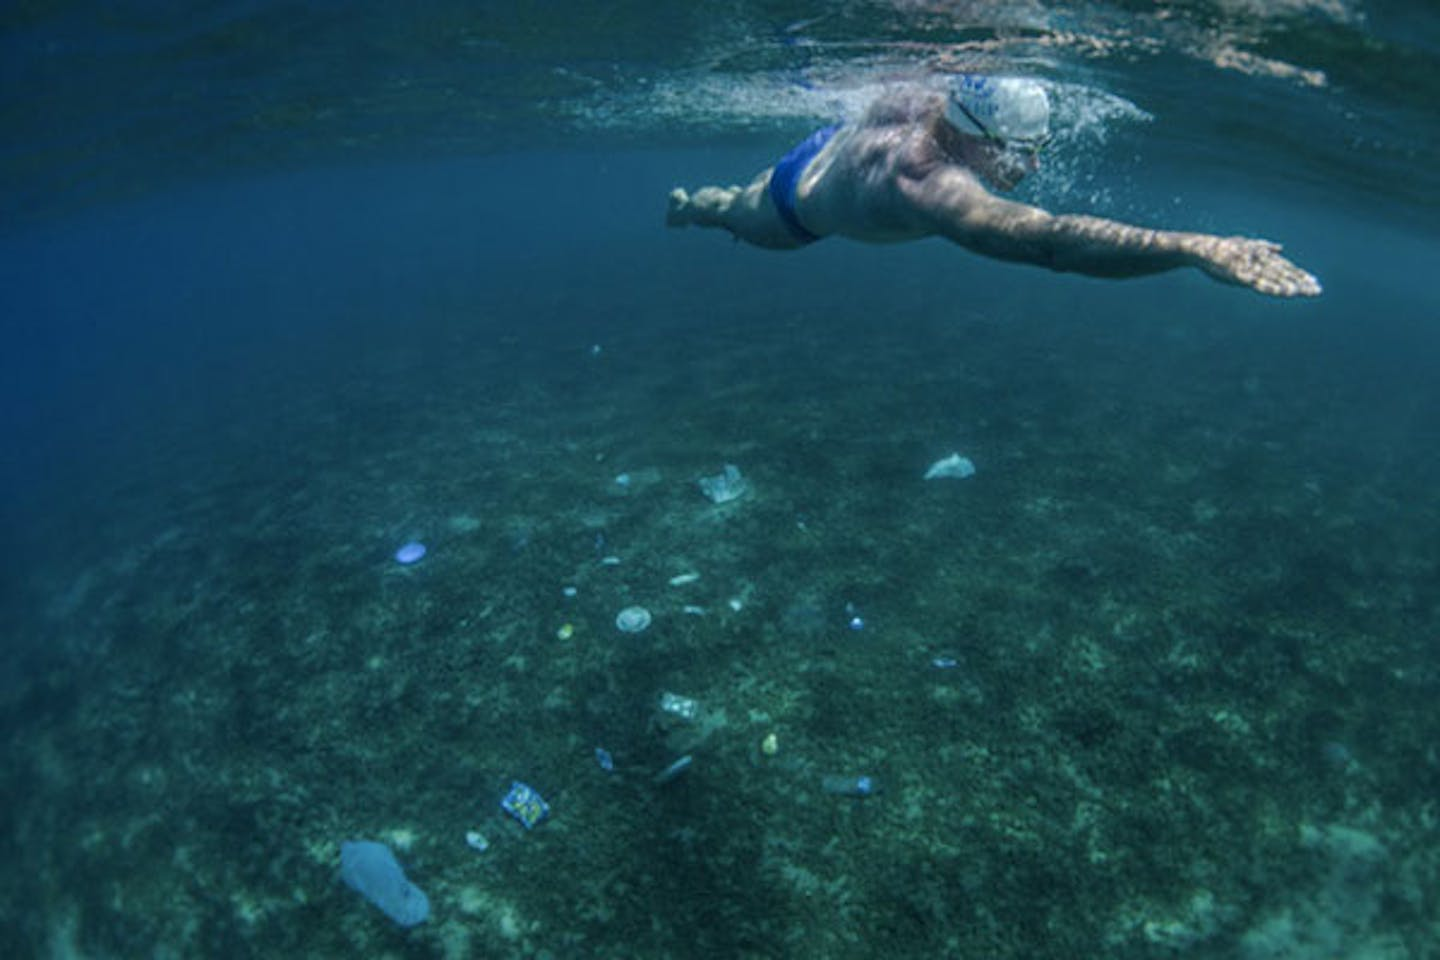 swimming with plastic